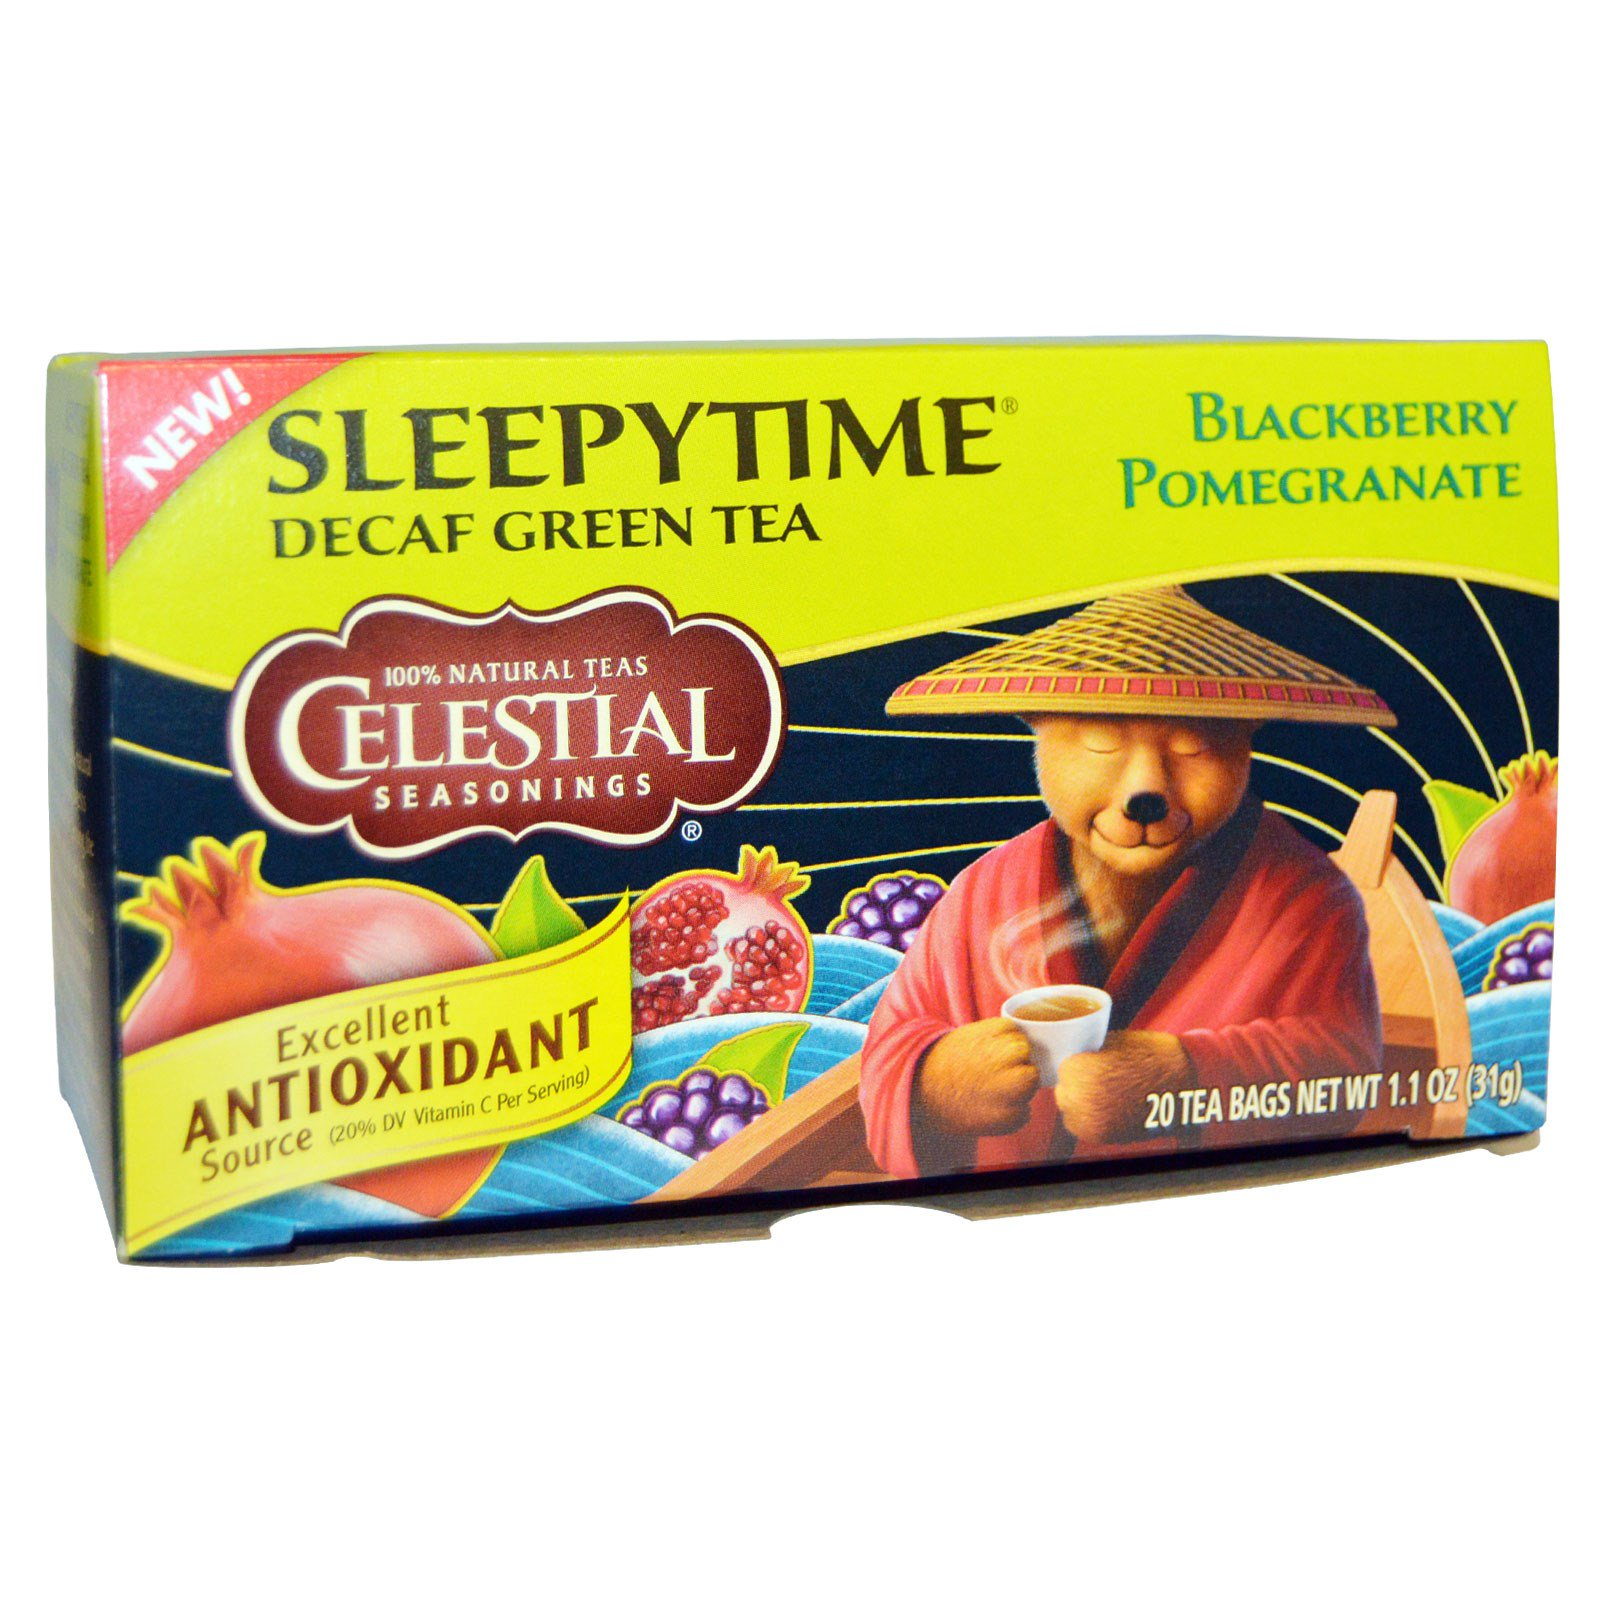 Celestial Seasonings Sleepytime Decaf Green Tea Blackberry Pomegranate 20 Bags